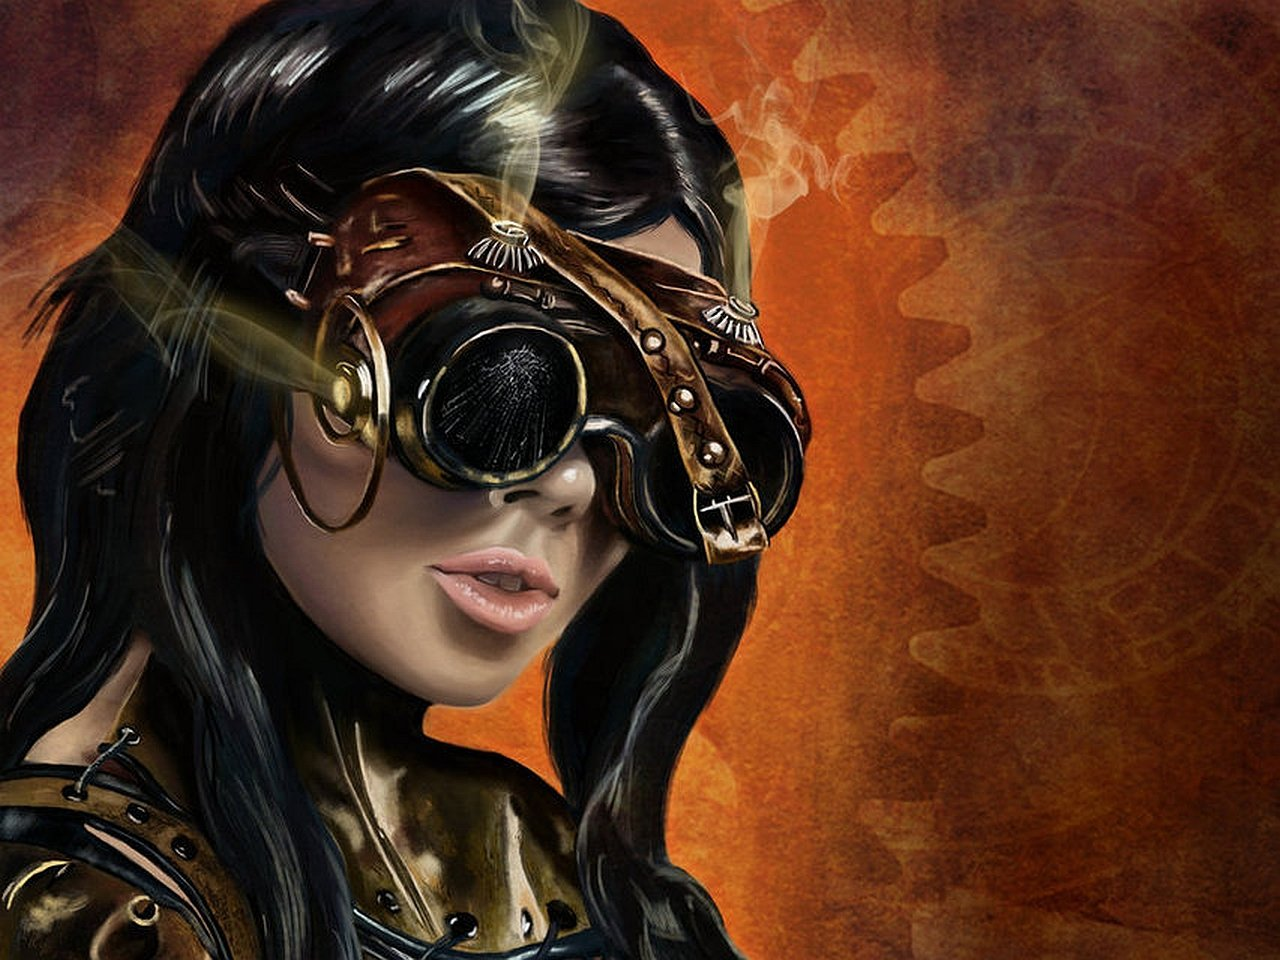 Steampunk Computer Wallpapers Desktop Backgrounds 1280x960 ID 1280x960